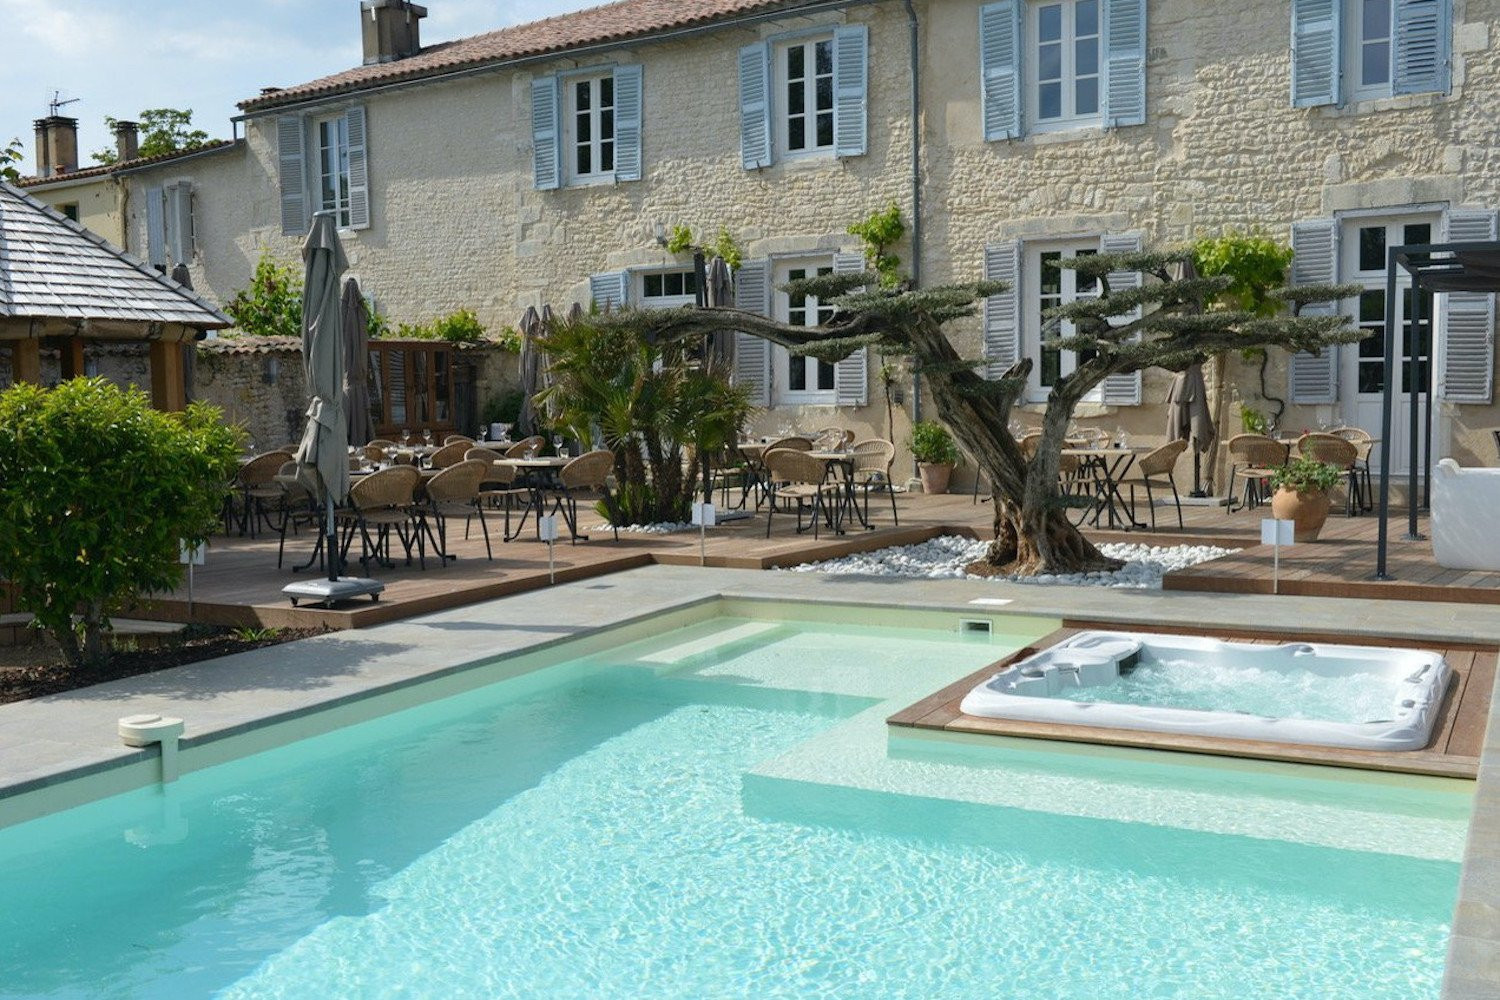 our selection of houses for sale in La Rochelle